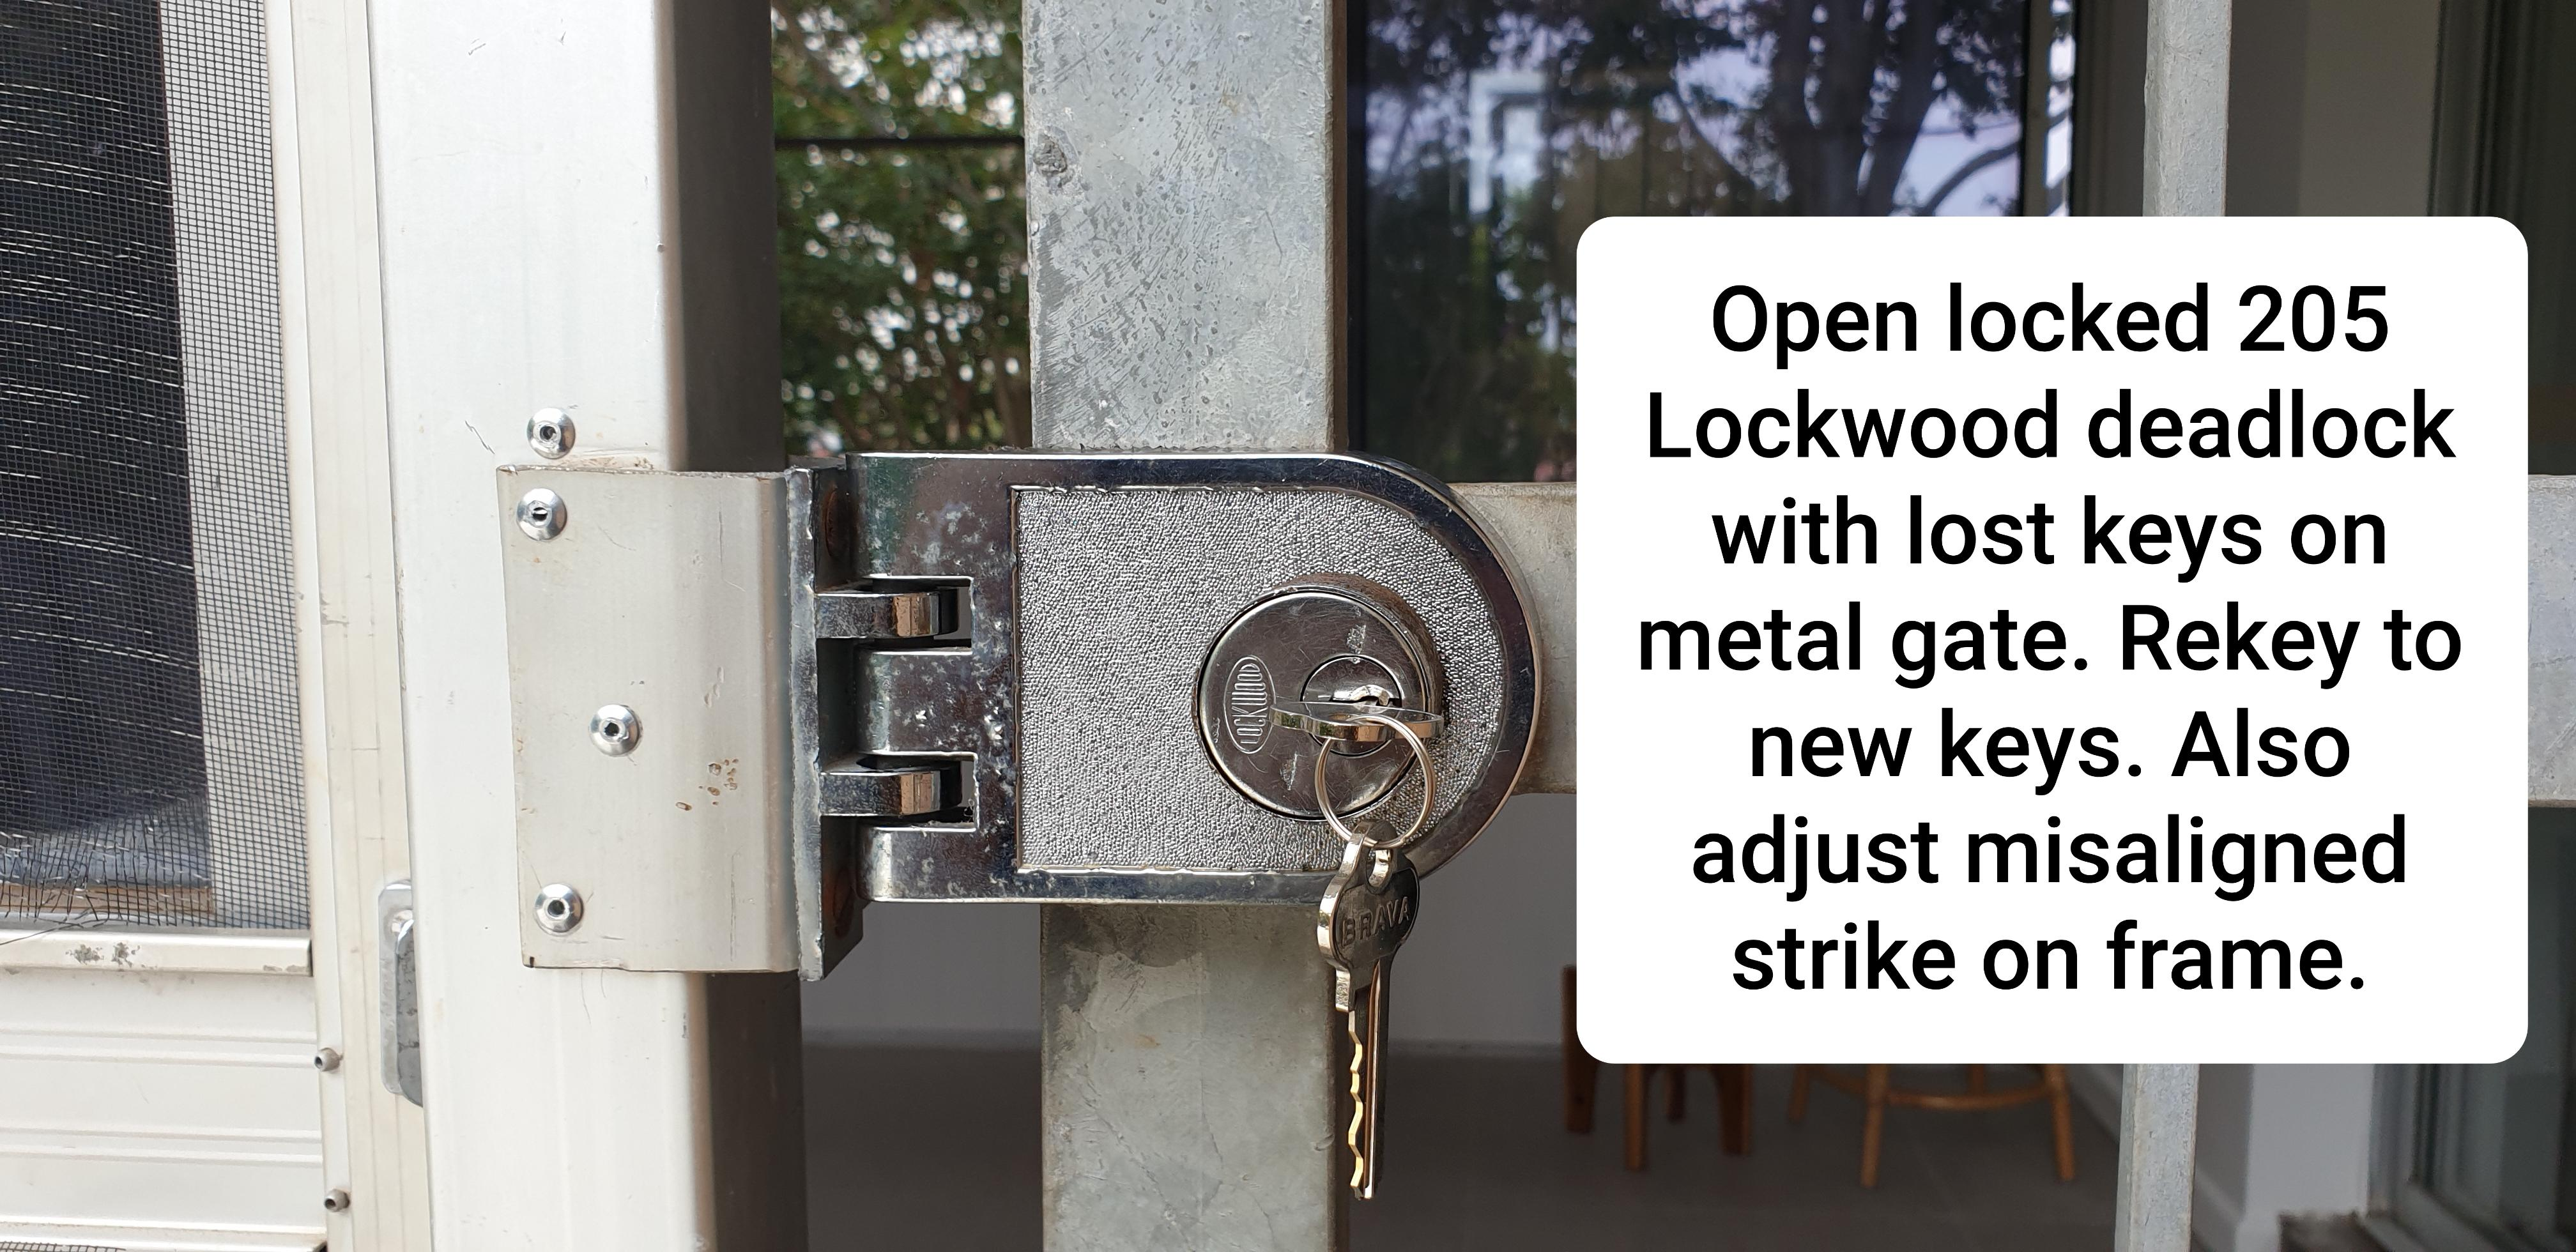 Lockwood 205 deadlock